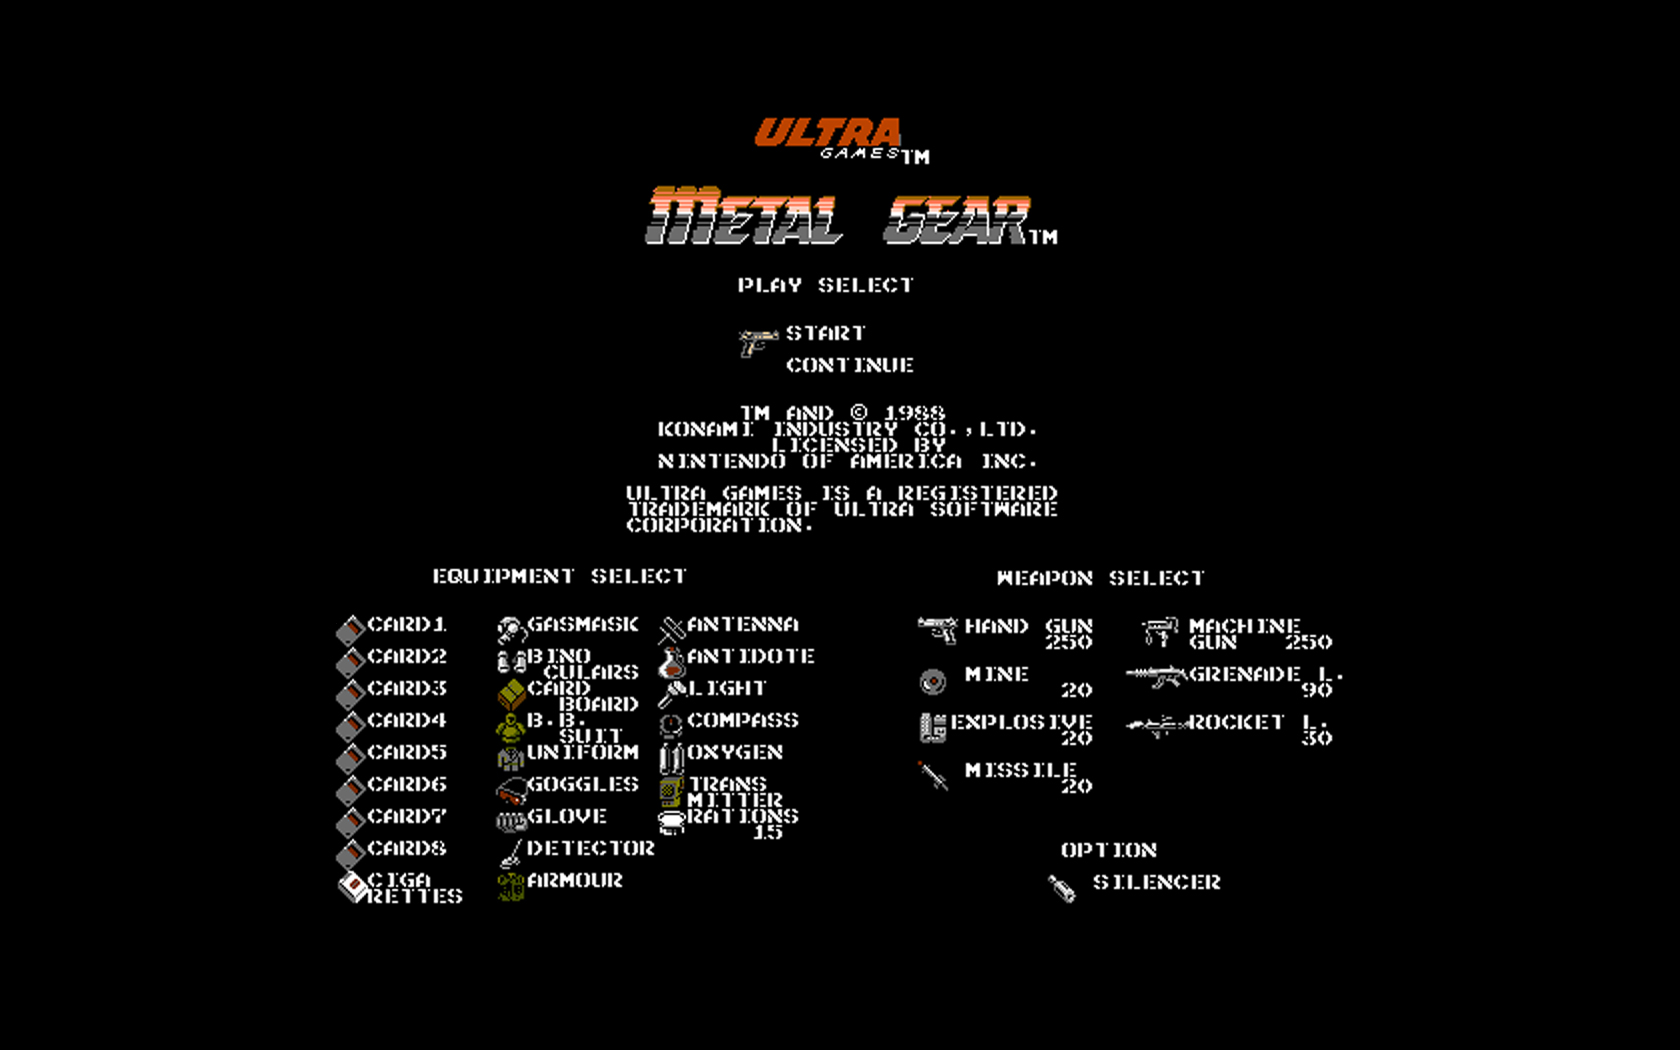 Metal Gear Background Image. There is also a widescreen 1680 x 1050 version.